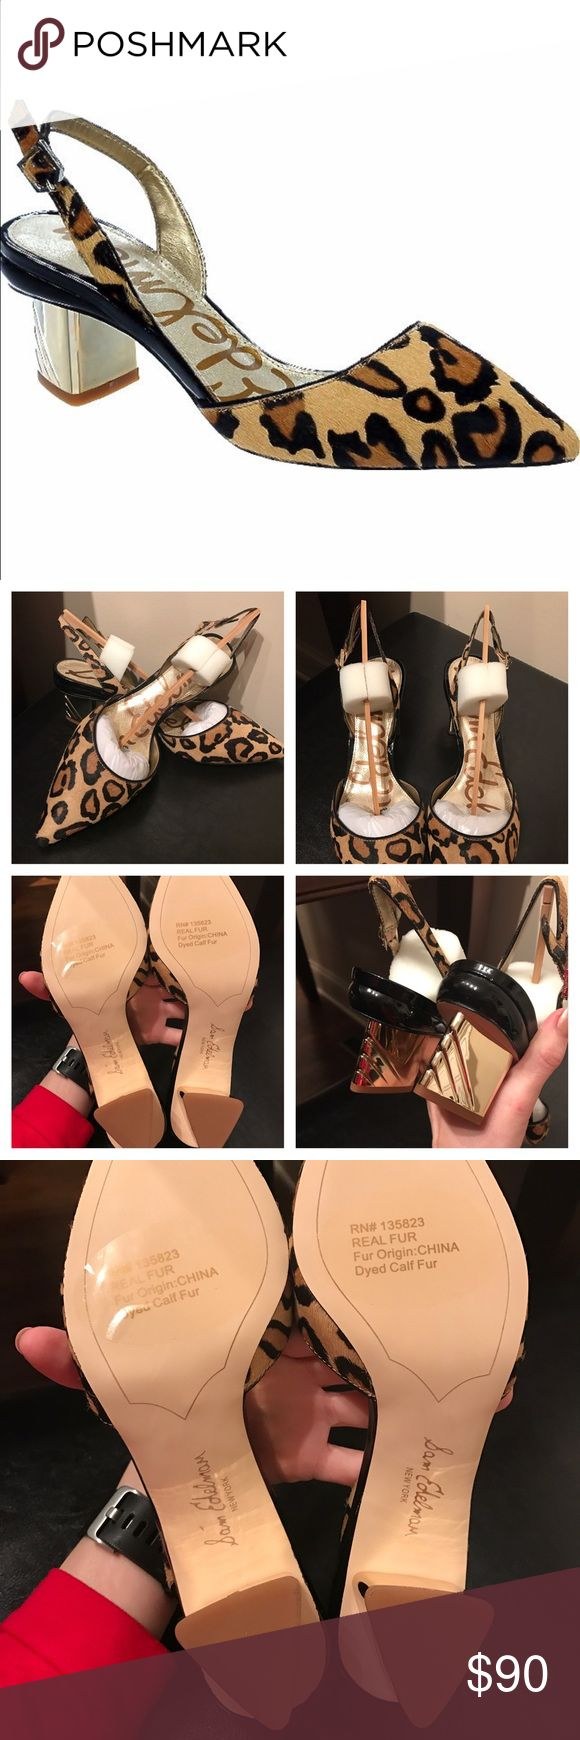 Sam Edelman leopard heel NWTS Brand new in box. Real fur beautiful leopard heels! Make an offer! Sam Edelman Shoes